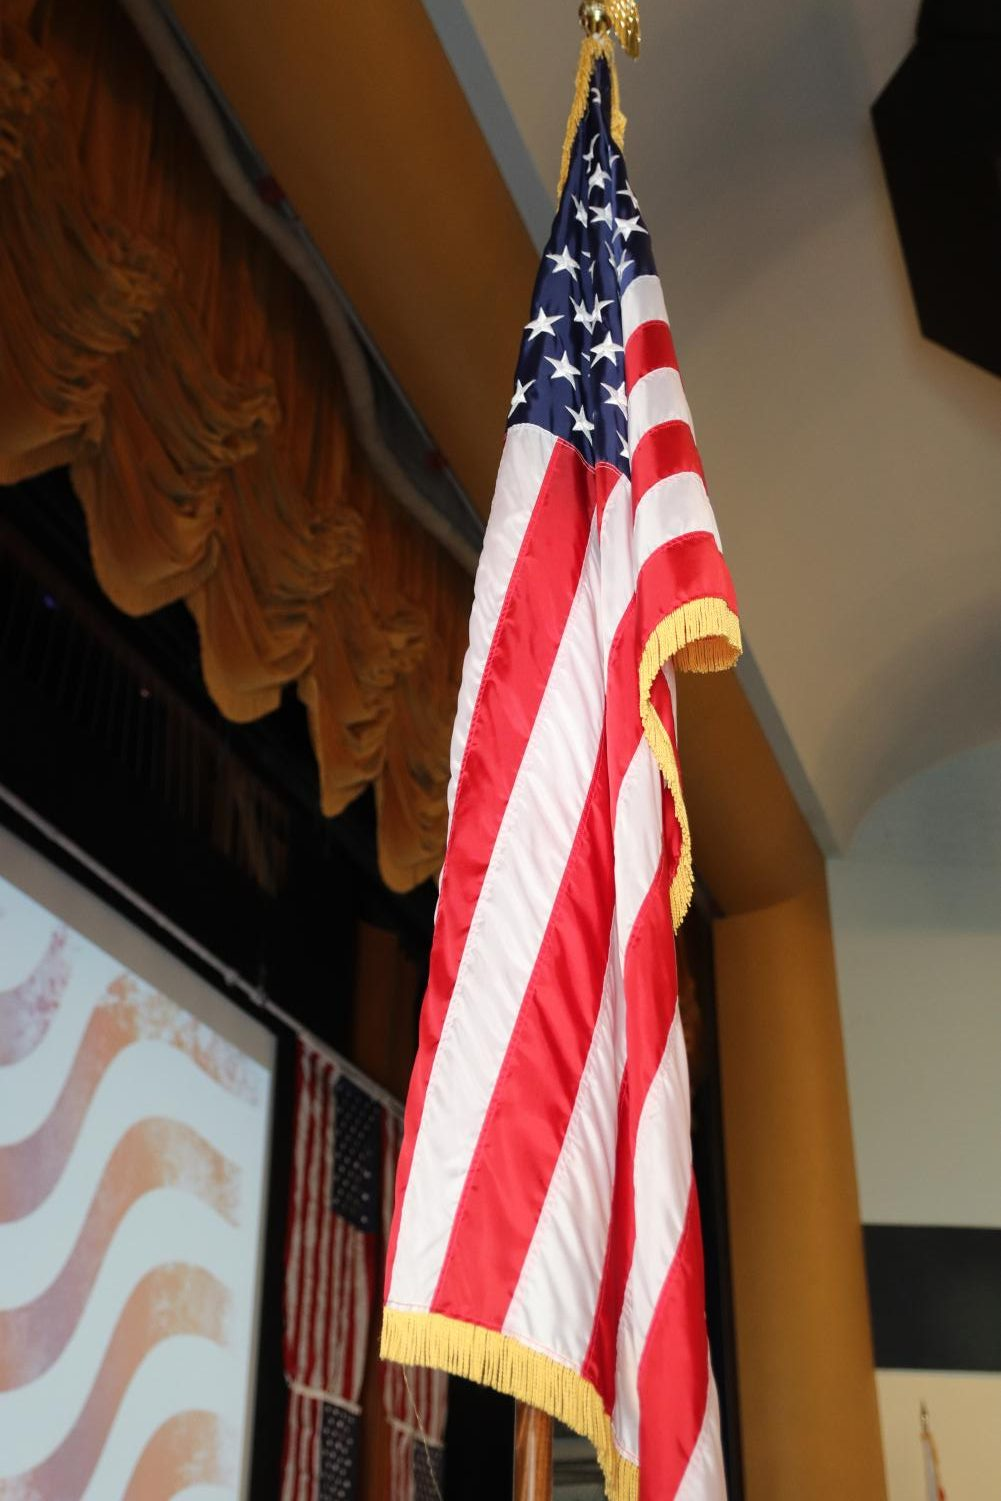 Flag stands tall while TUHS students honor Veterans. Human Element students invited Veterans to tell their experiences. Advisor Emmy Lou Heber said,